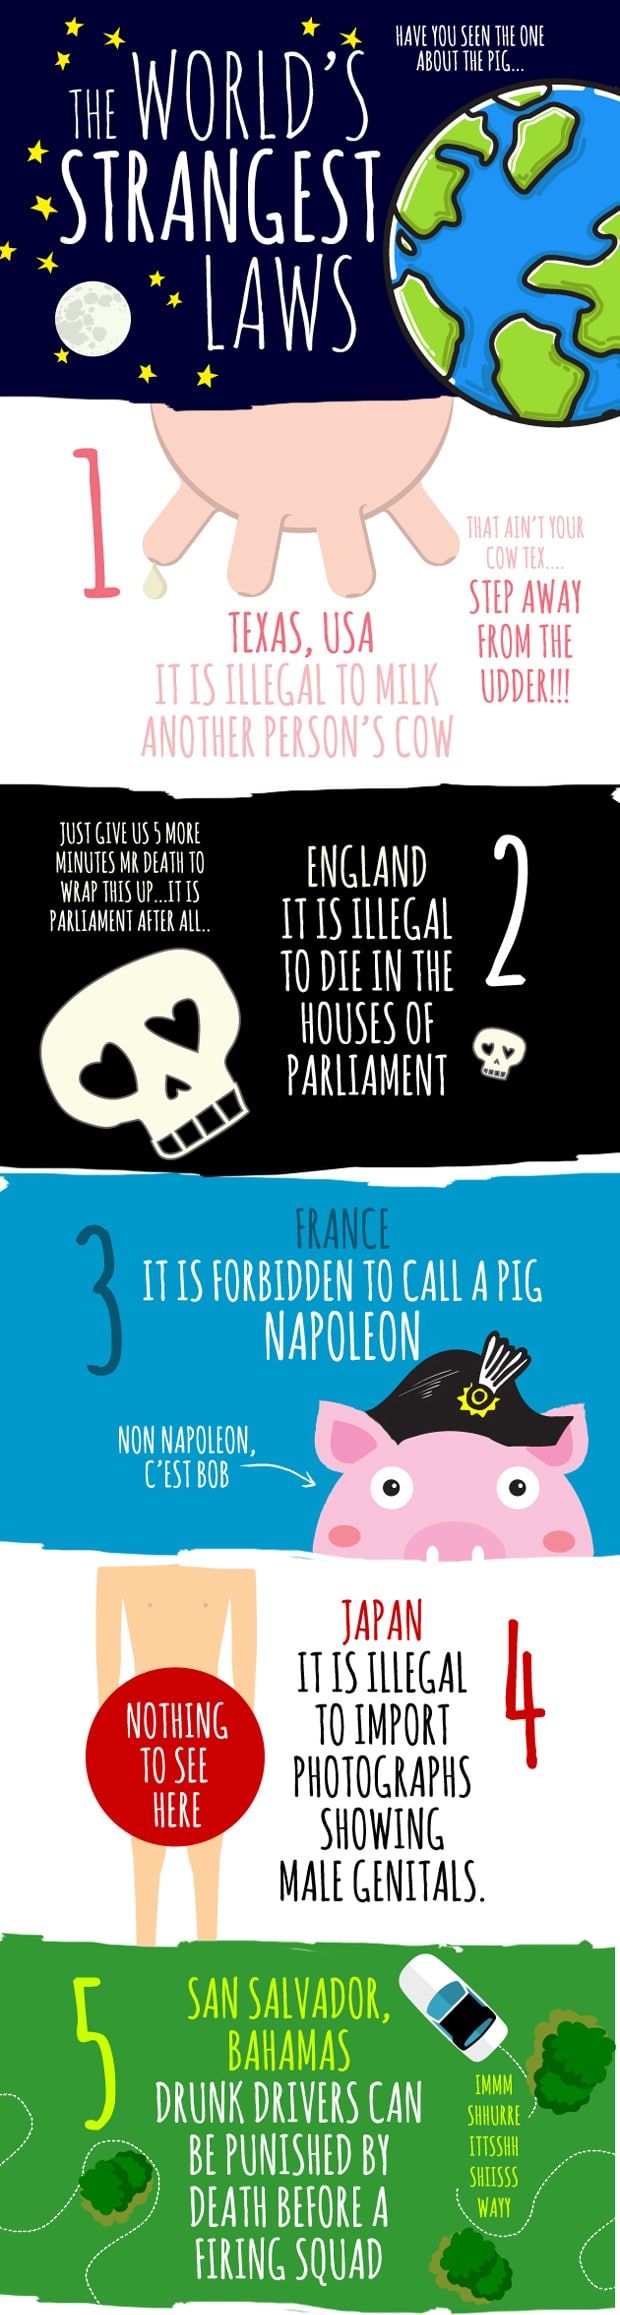 The strangest laws around the world